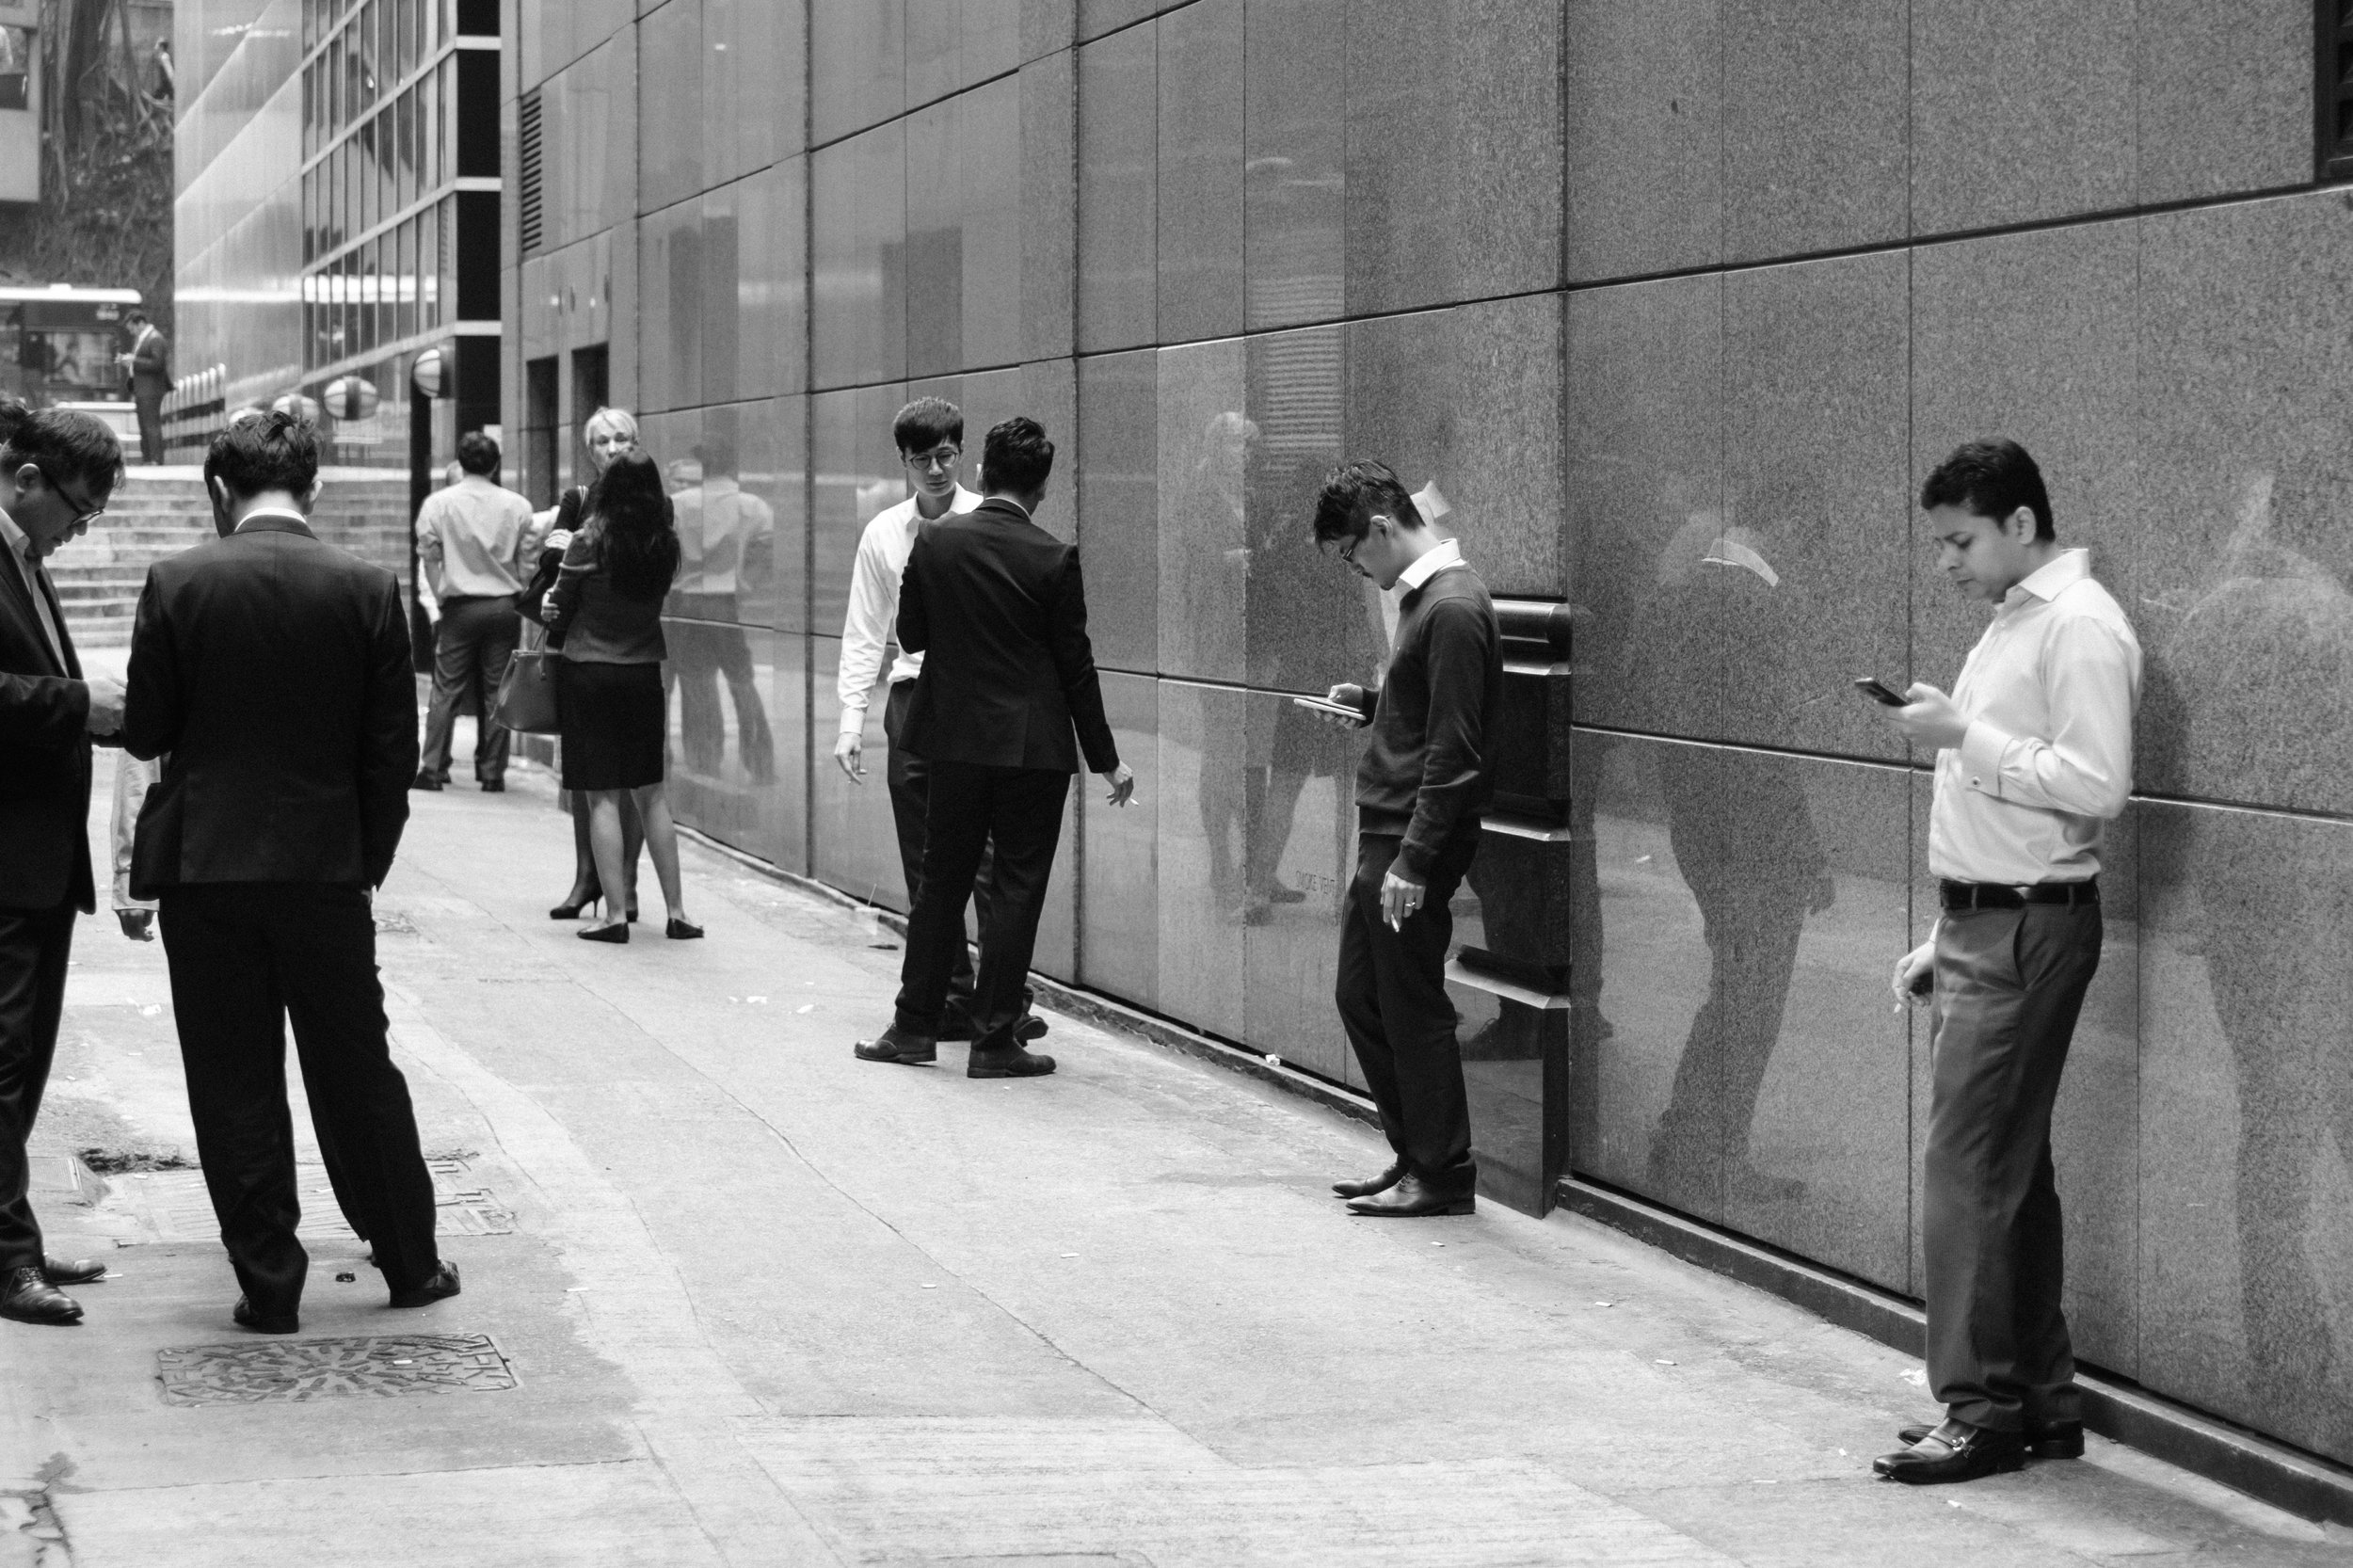 Bank staff on break in Hong Kong Central